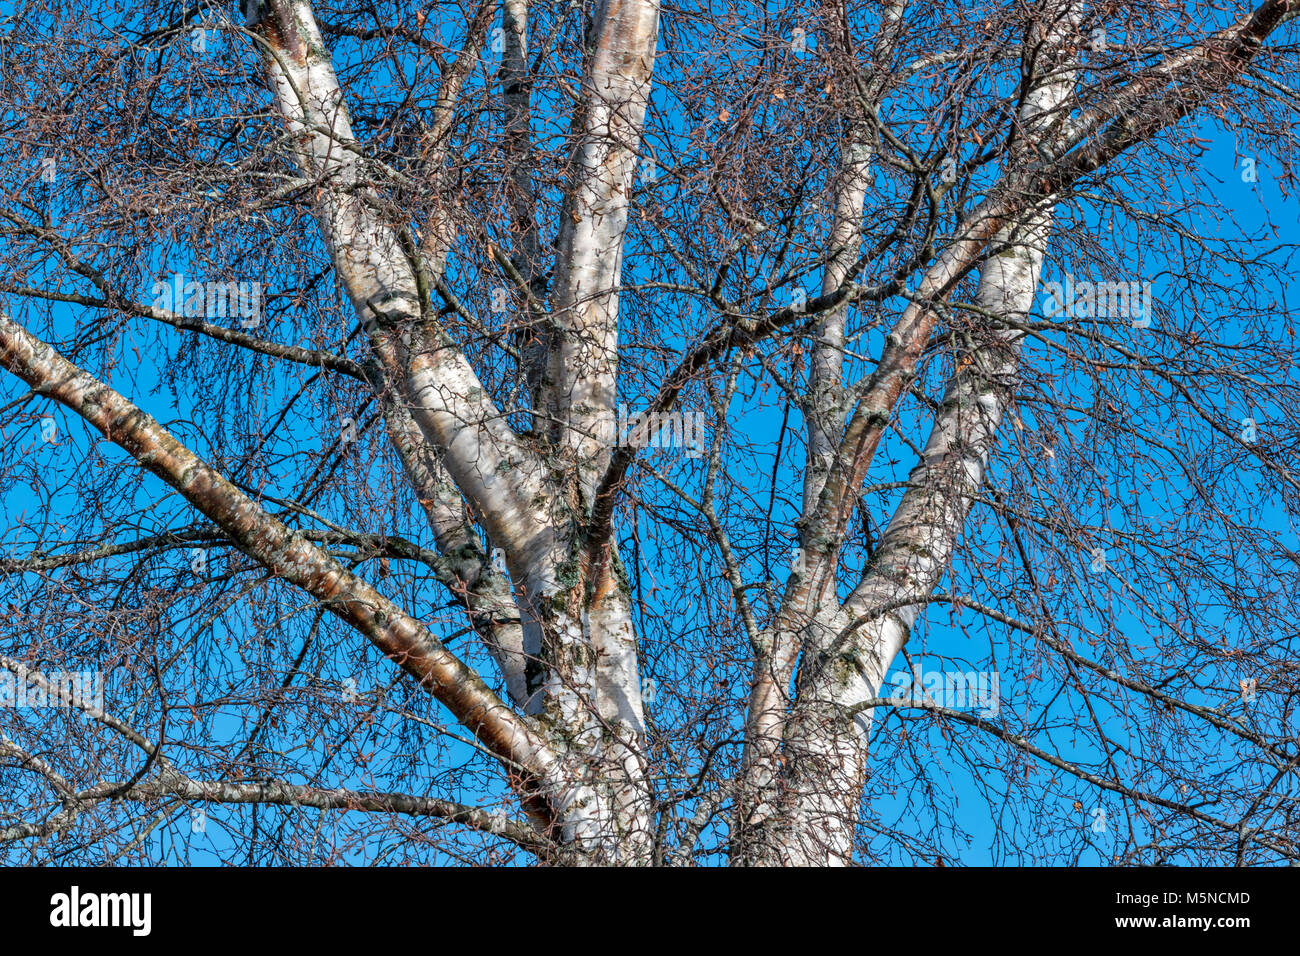 SILVER BIRCH TREE BETULA PENDULA TRUNK AND BRANCHES IN WINTER WITH SILVER BARK AND BROWN CATKINS - Stock Image